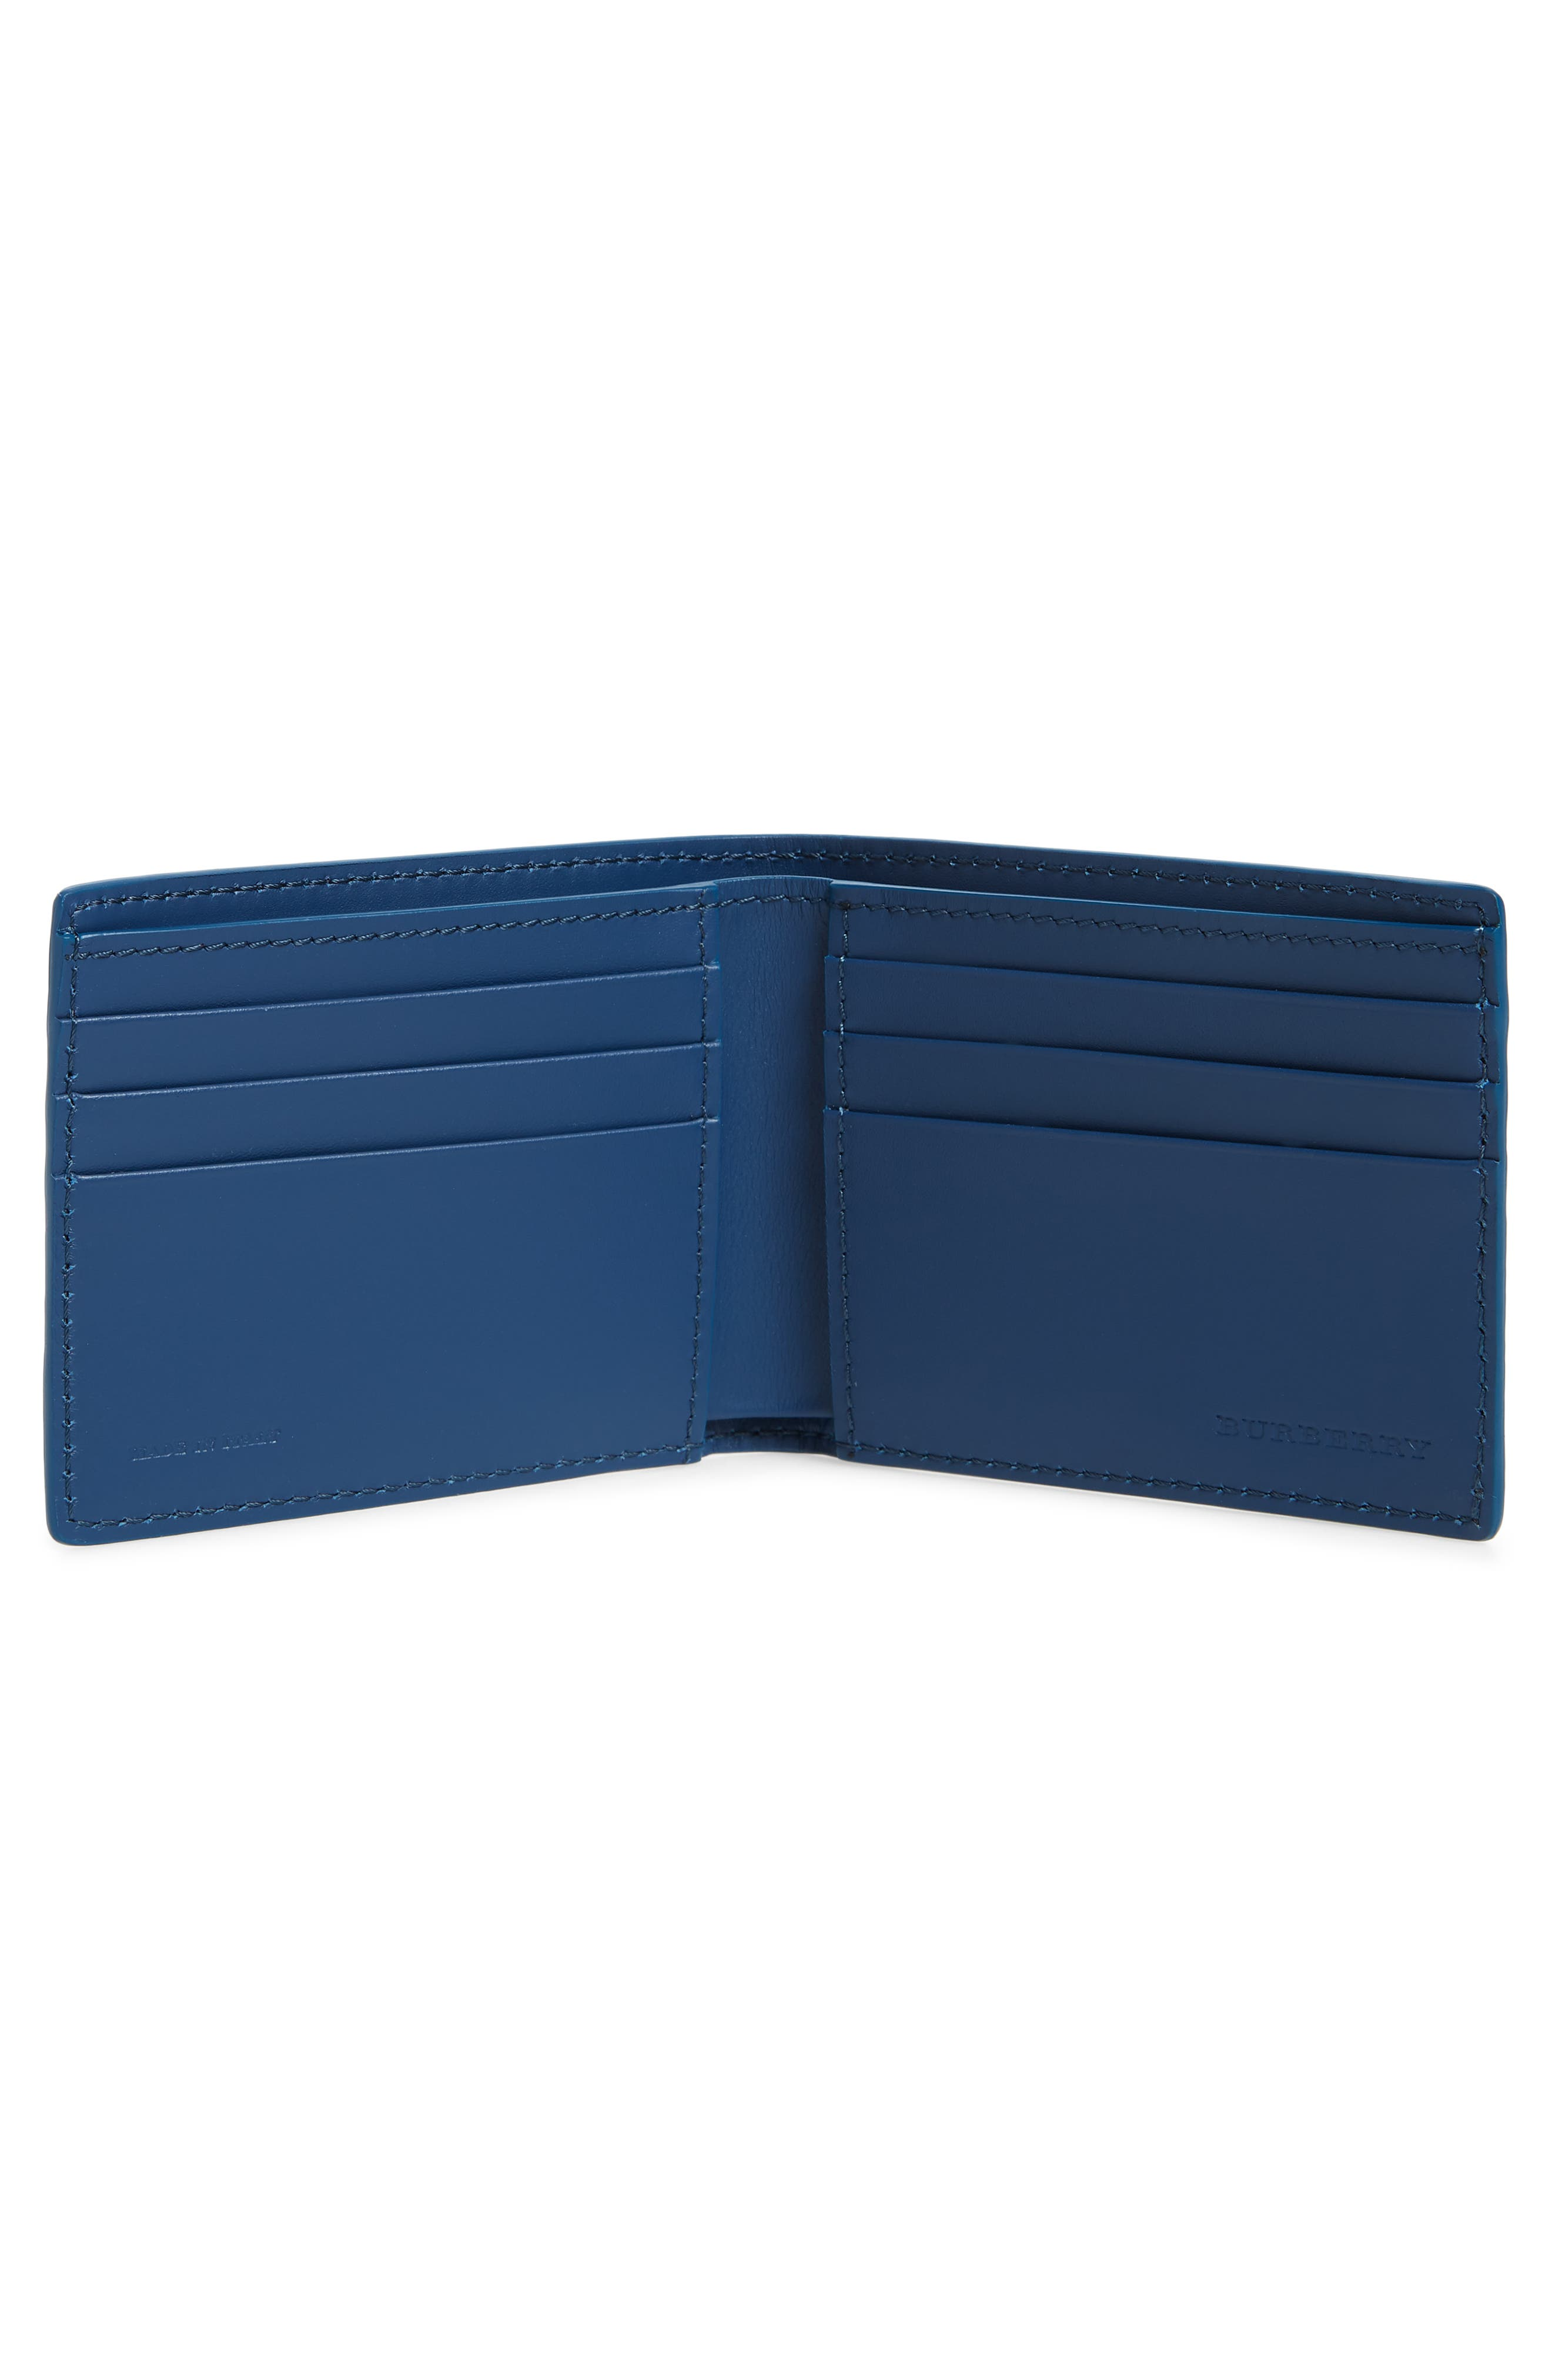 Bifold Leather Wallet,                             Alternate thumbnail 2, color,                             BRIGHT ULTRAMARINE